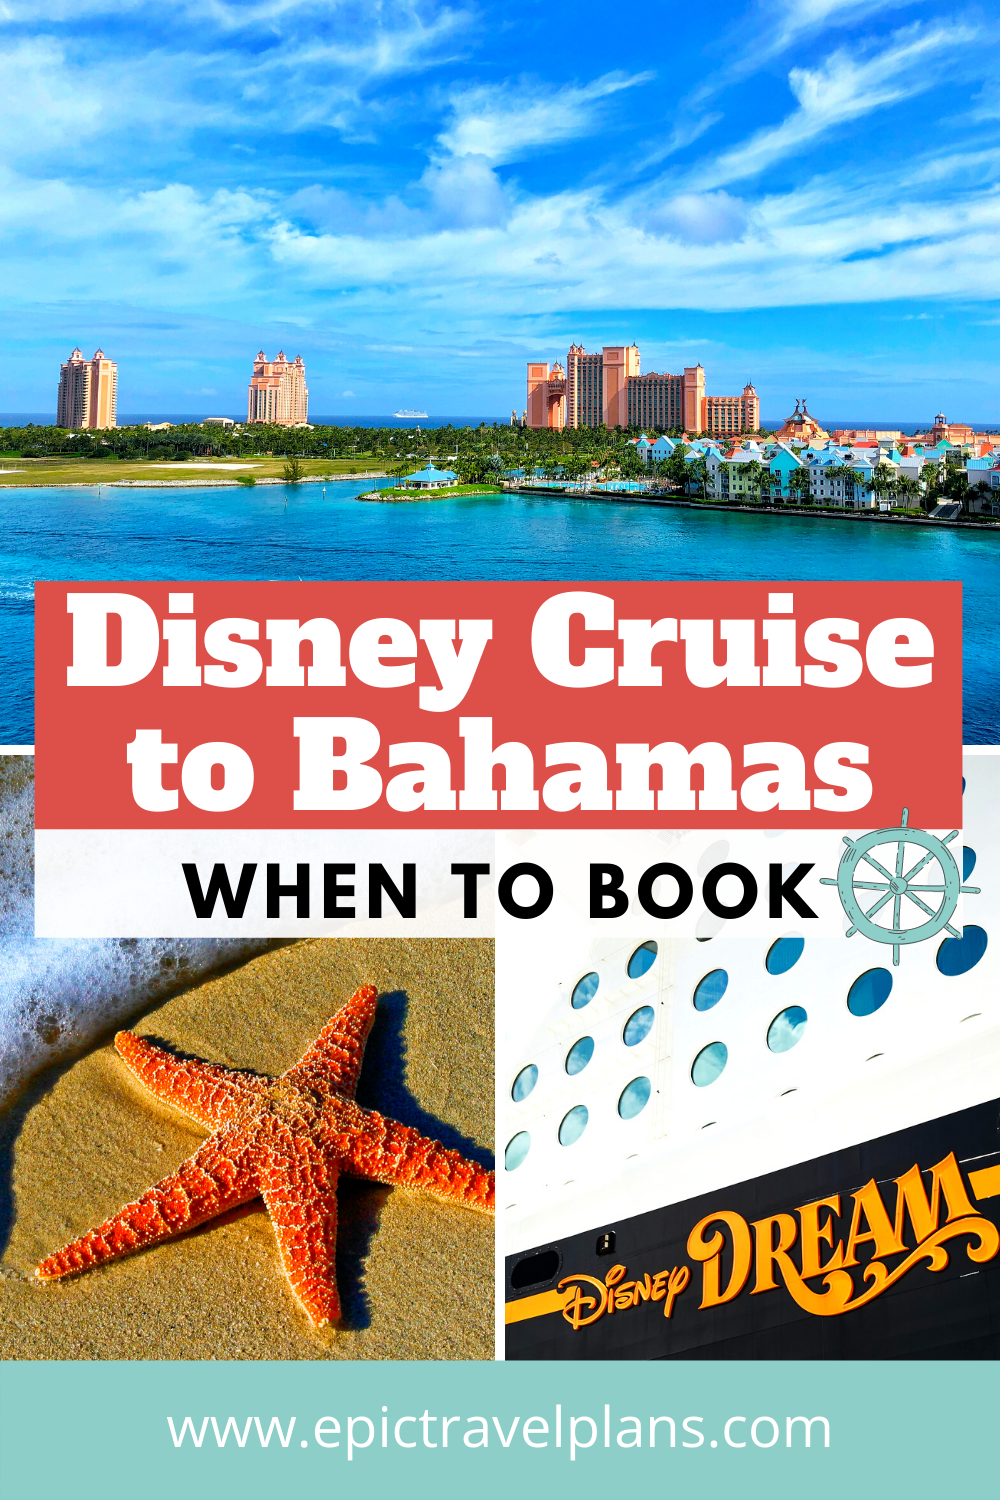 When to book Disney cruise to Bahamas guide, best prices for Disney cruises